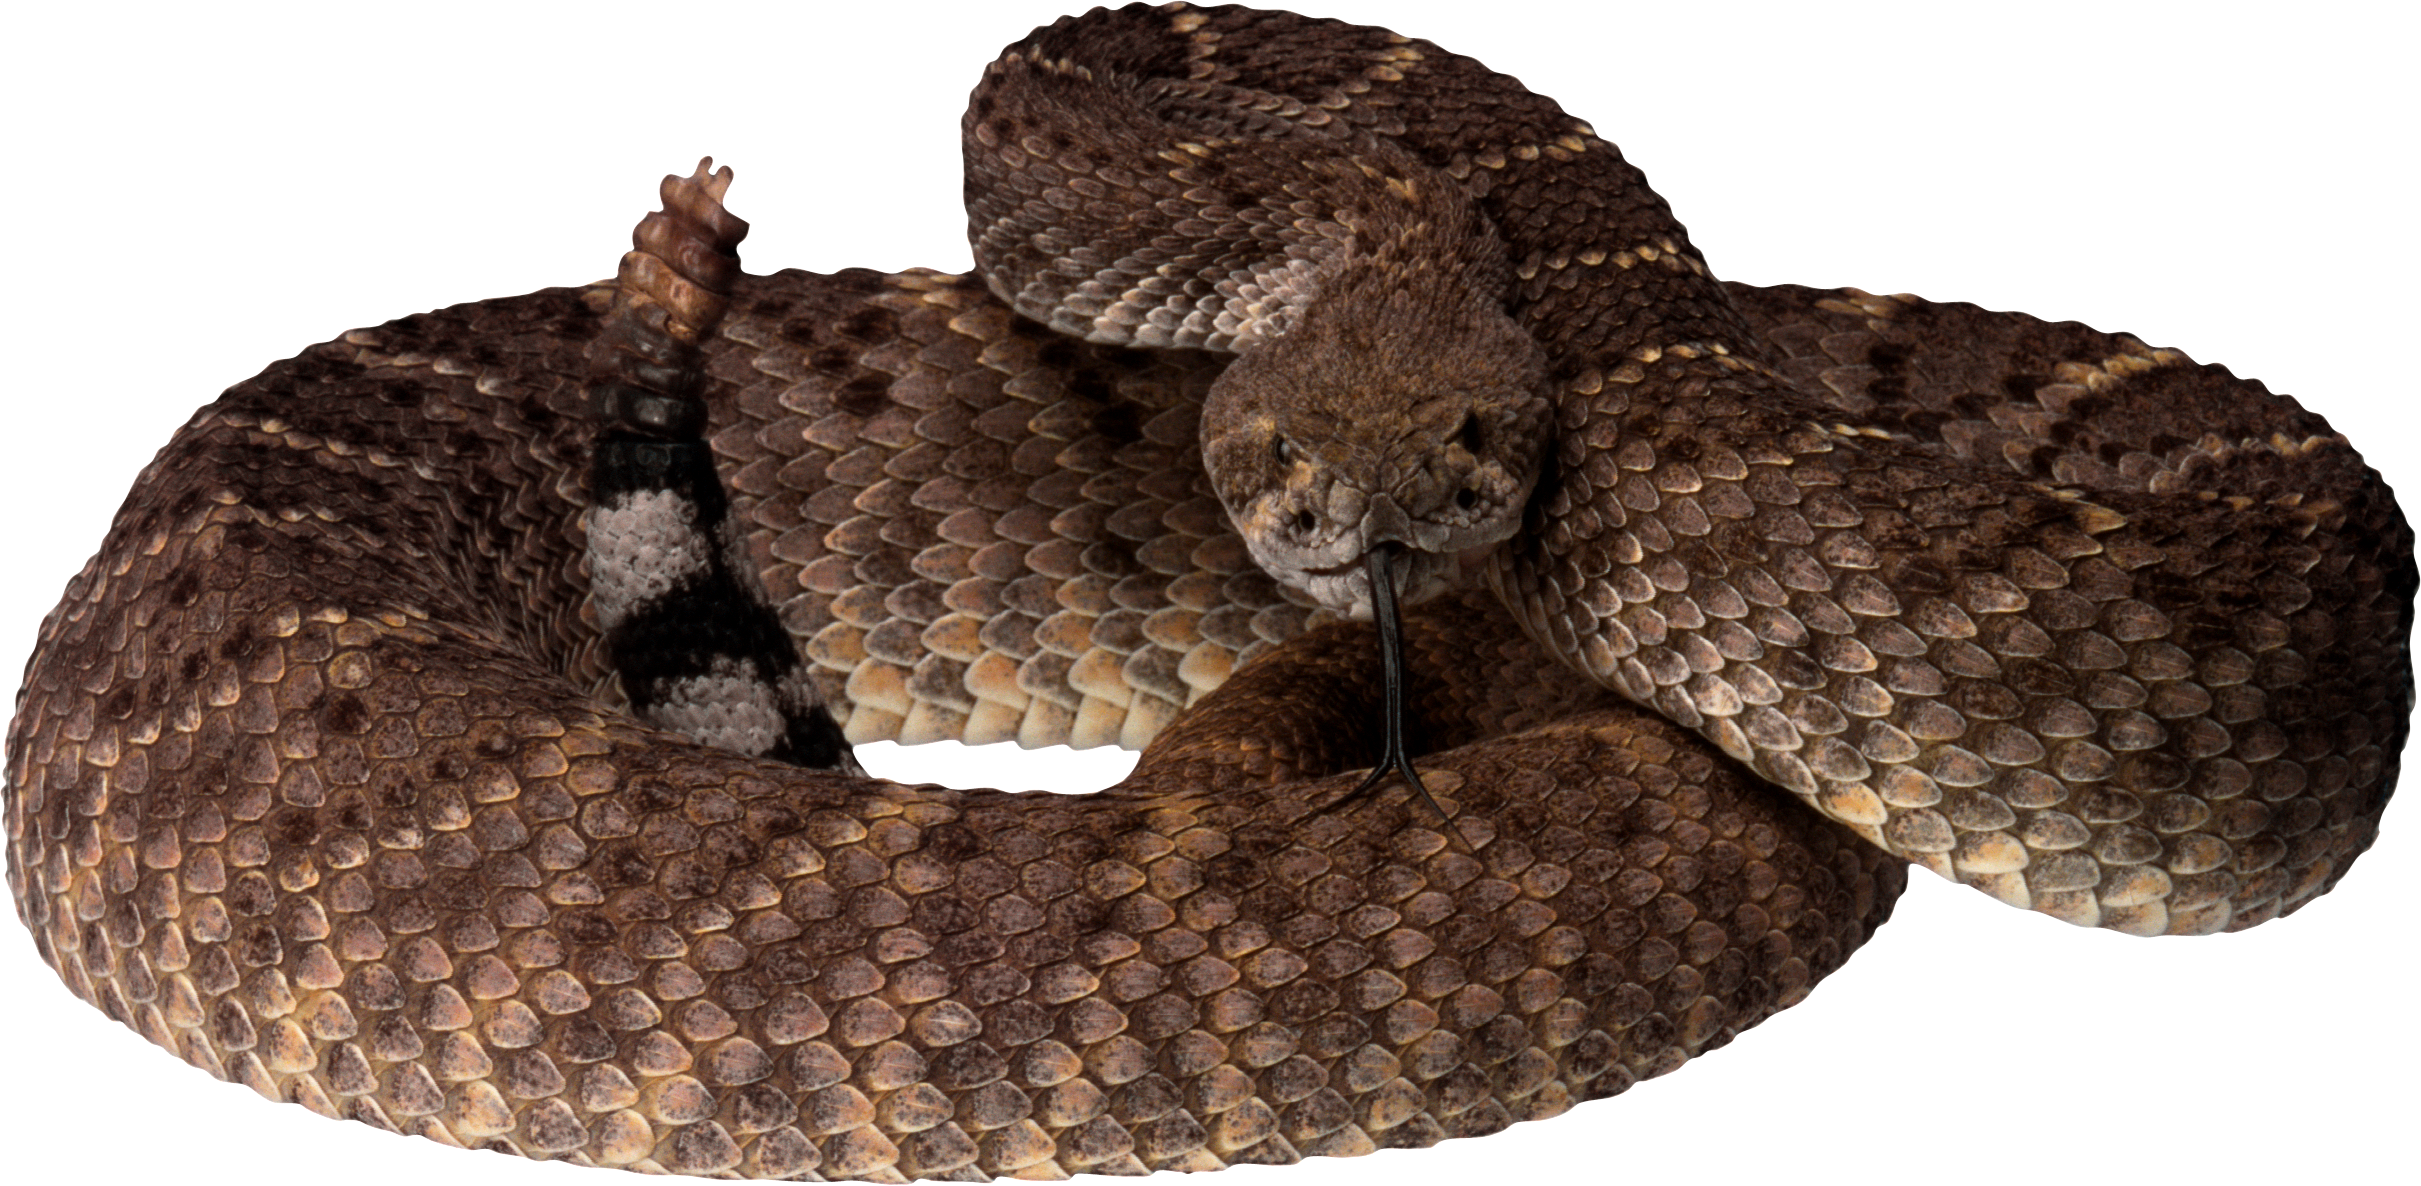 Snake clipart forest animal. Png pinterest and